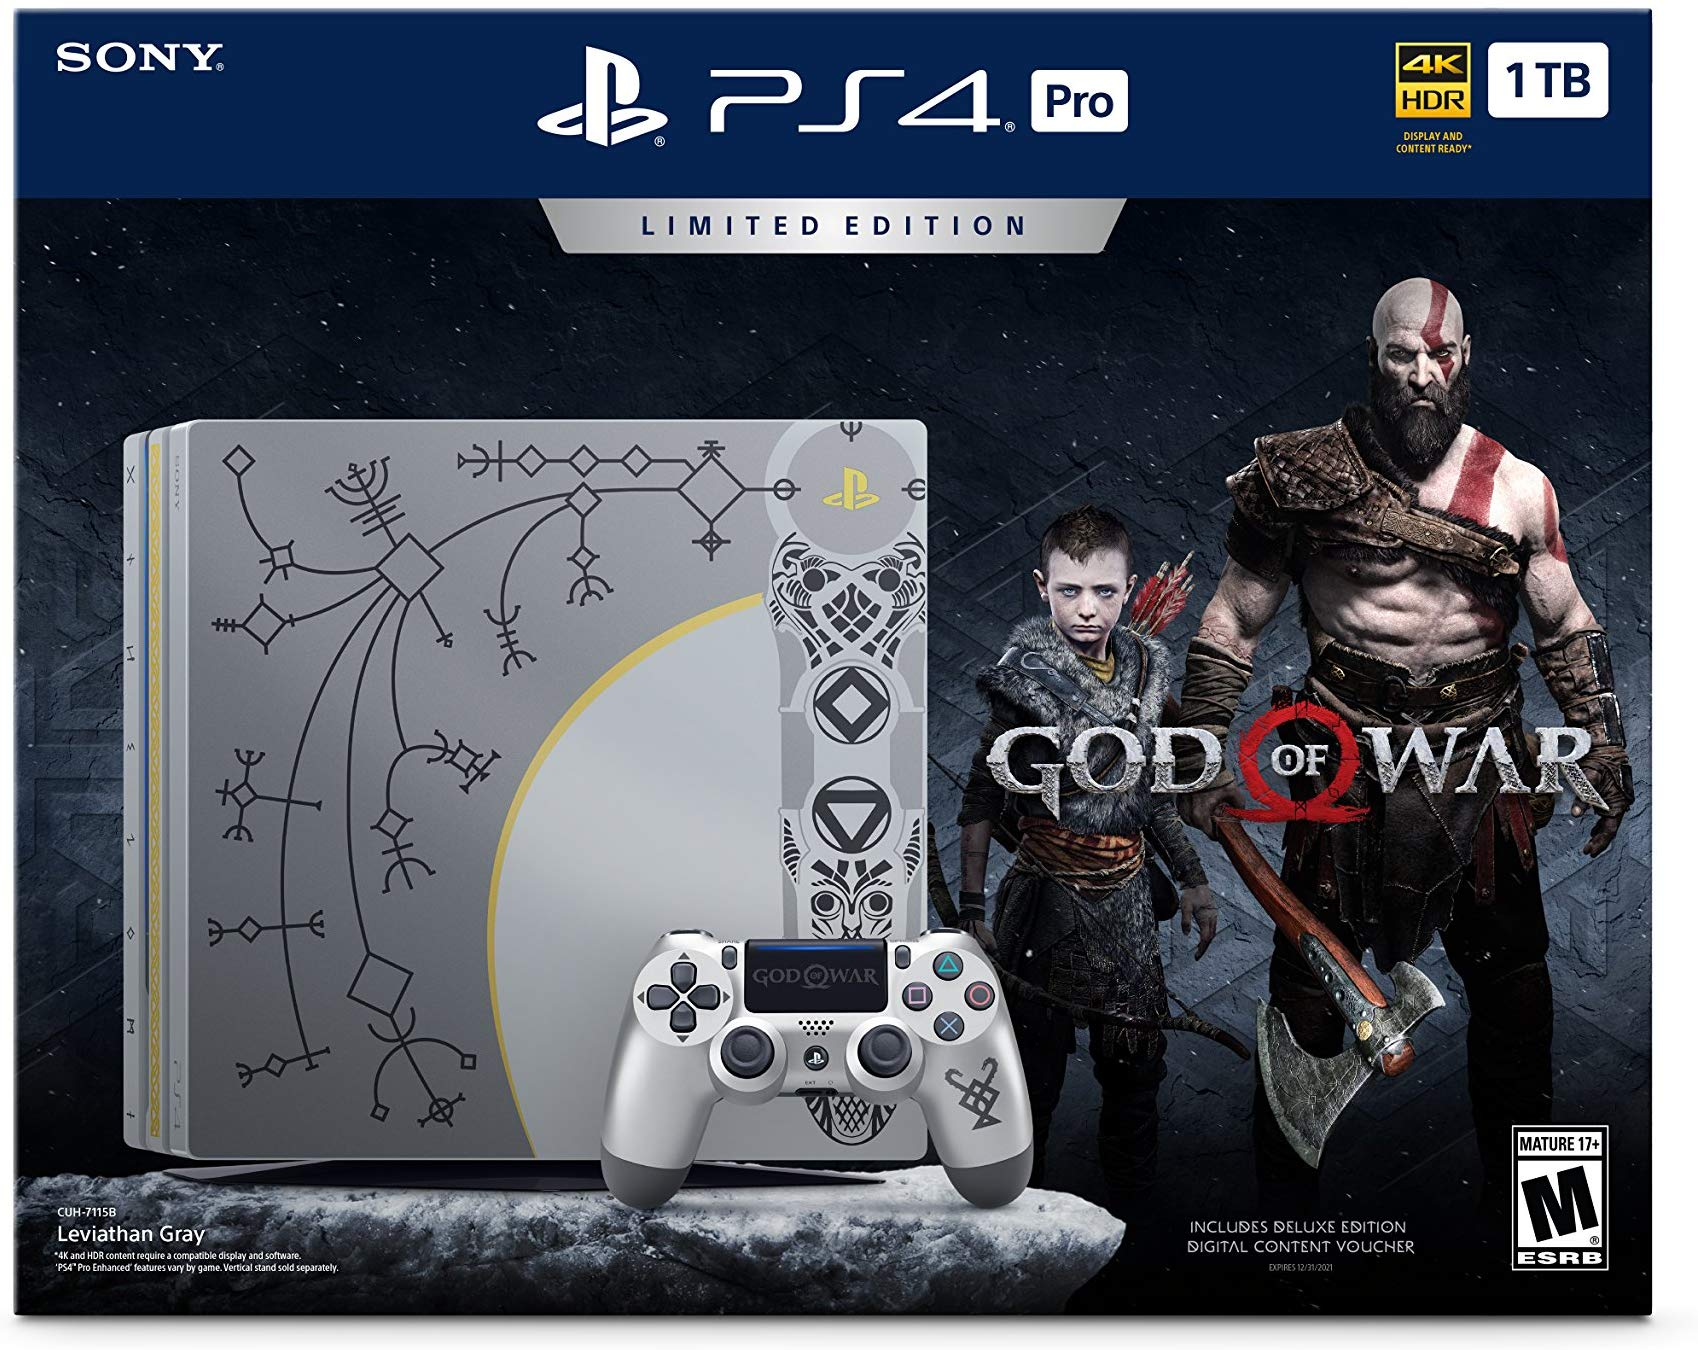 Sony PlayStation 4 Pro 1TB Limited Edition Console - God